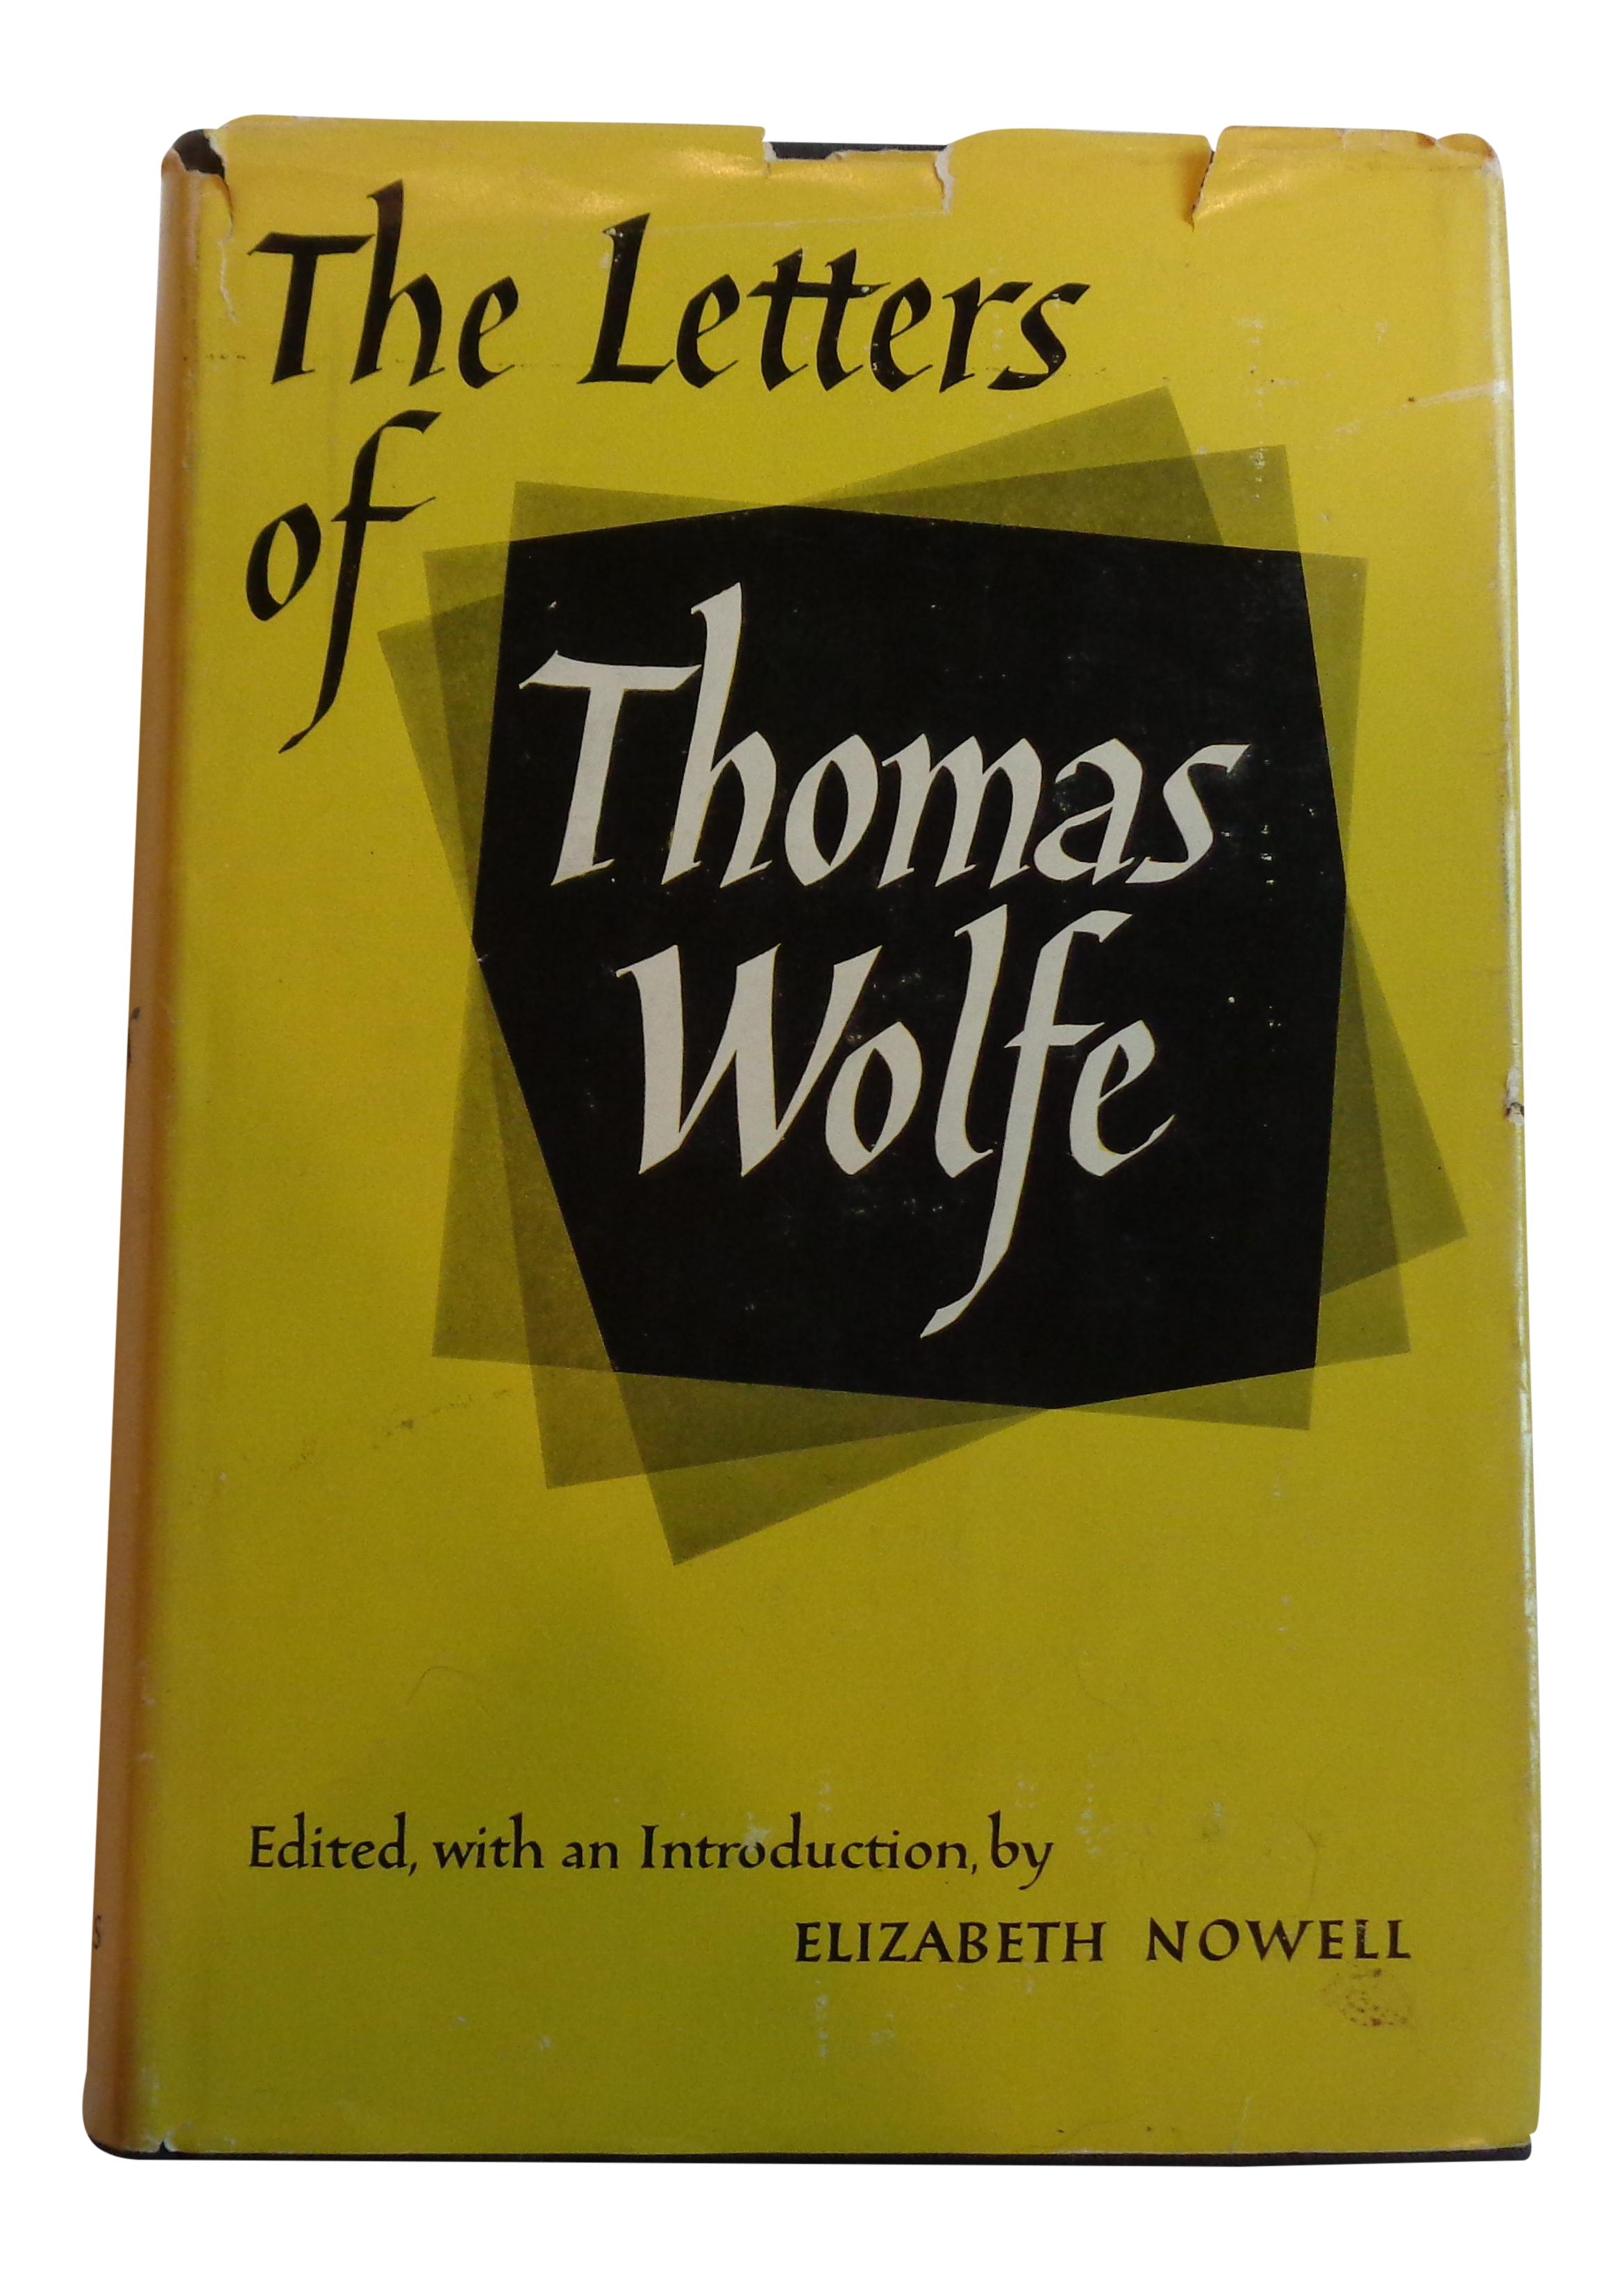 how tom wolfe changed the literary Tom wolfe's style, cast of mind, and literary mission were essentially satirical the satirist is chiefly interested in exposé—in exposing the pretensions, hypocrisies, fraudulence, and even.